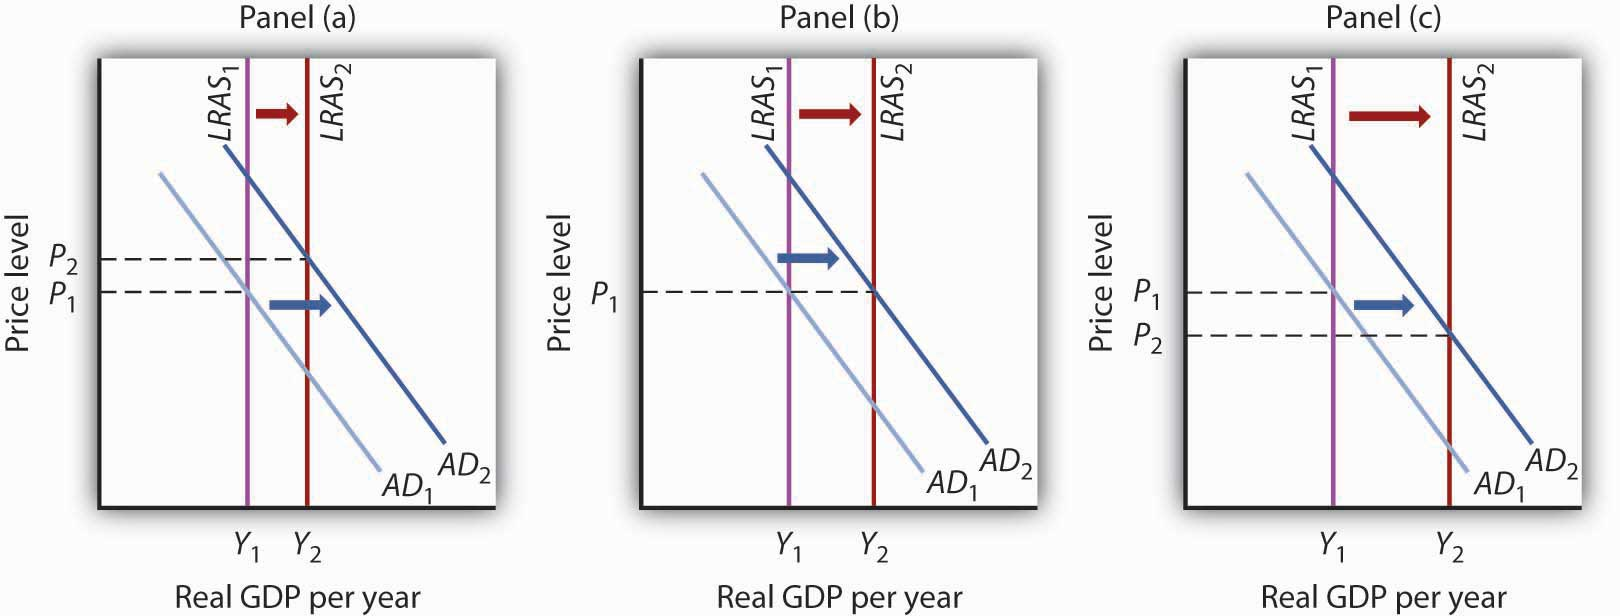 Real GDP per year graphs